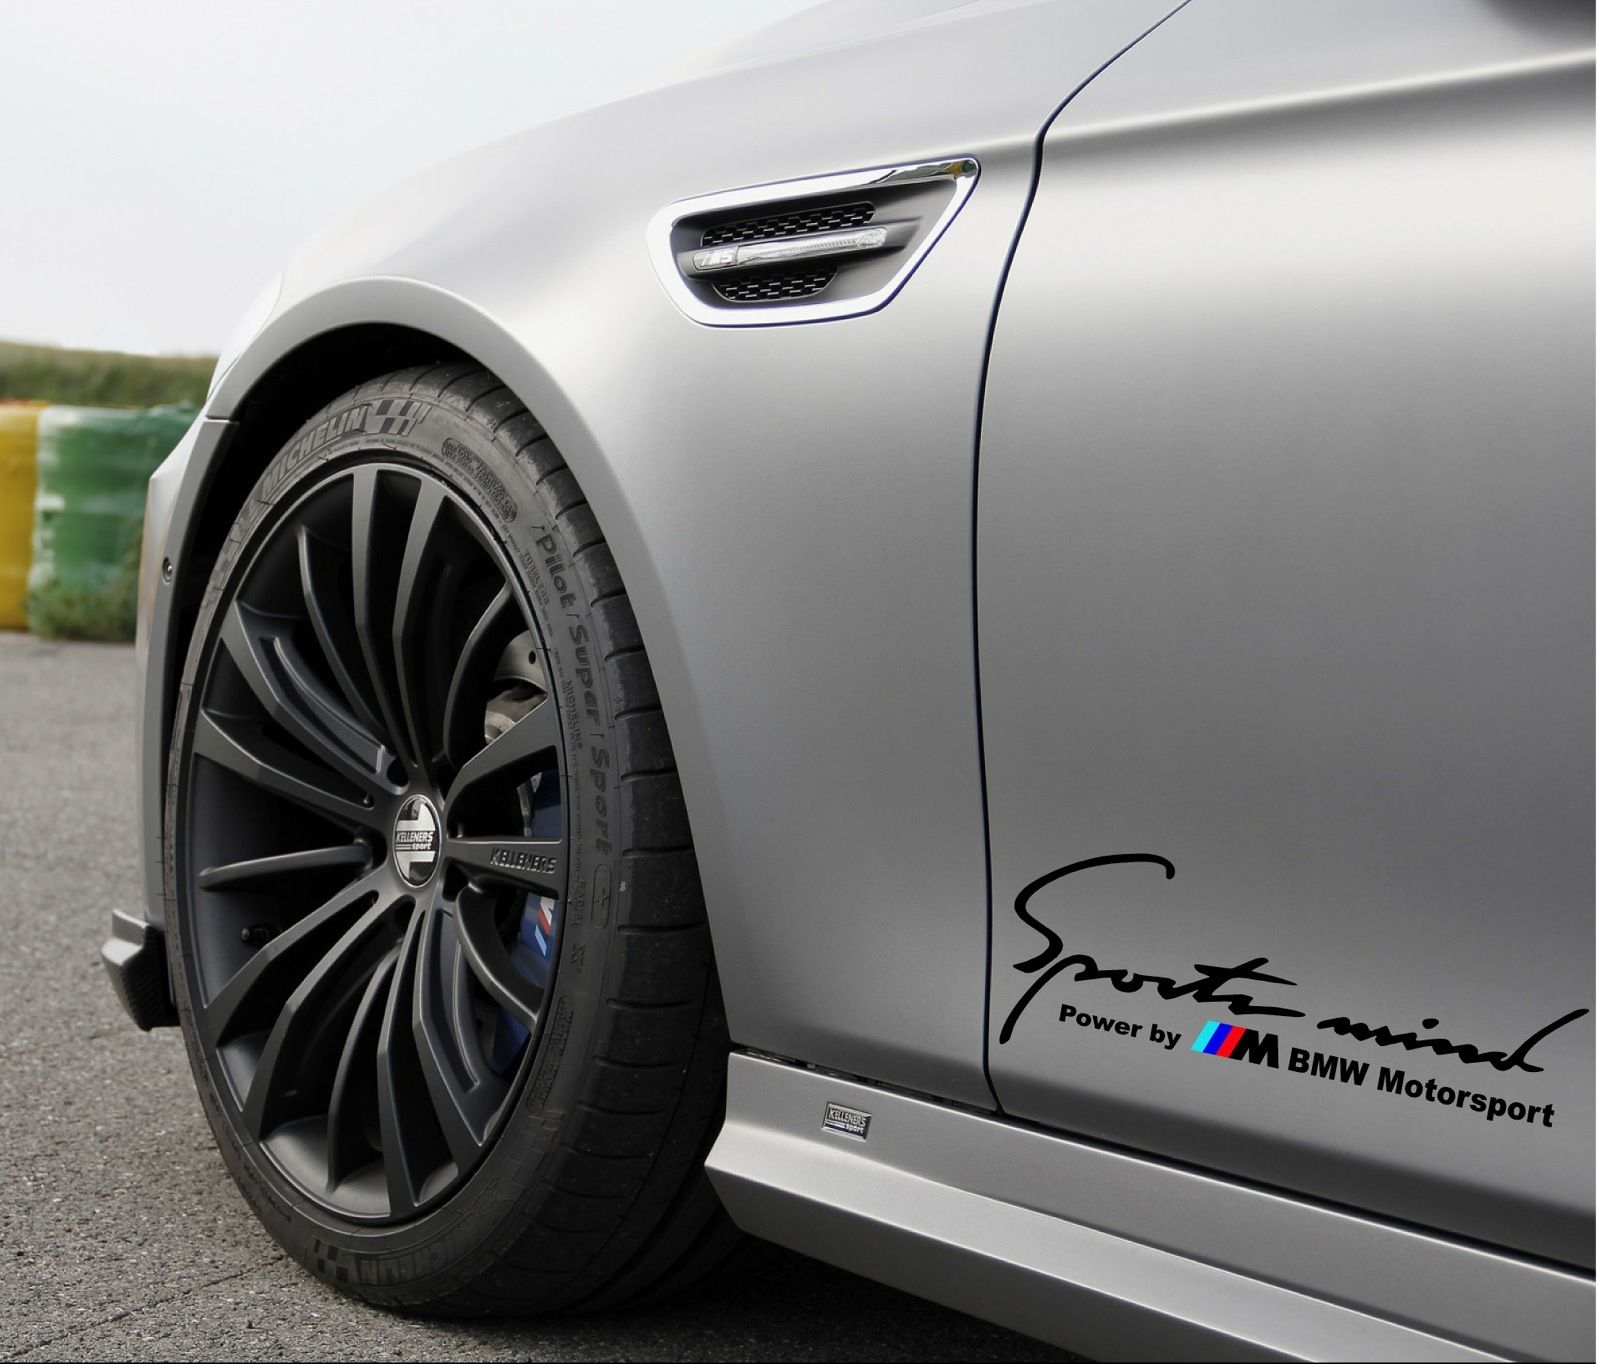 2 Sports Mind Power By M Bmw Motorsport M3 M5 Decal Sticker